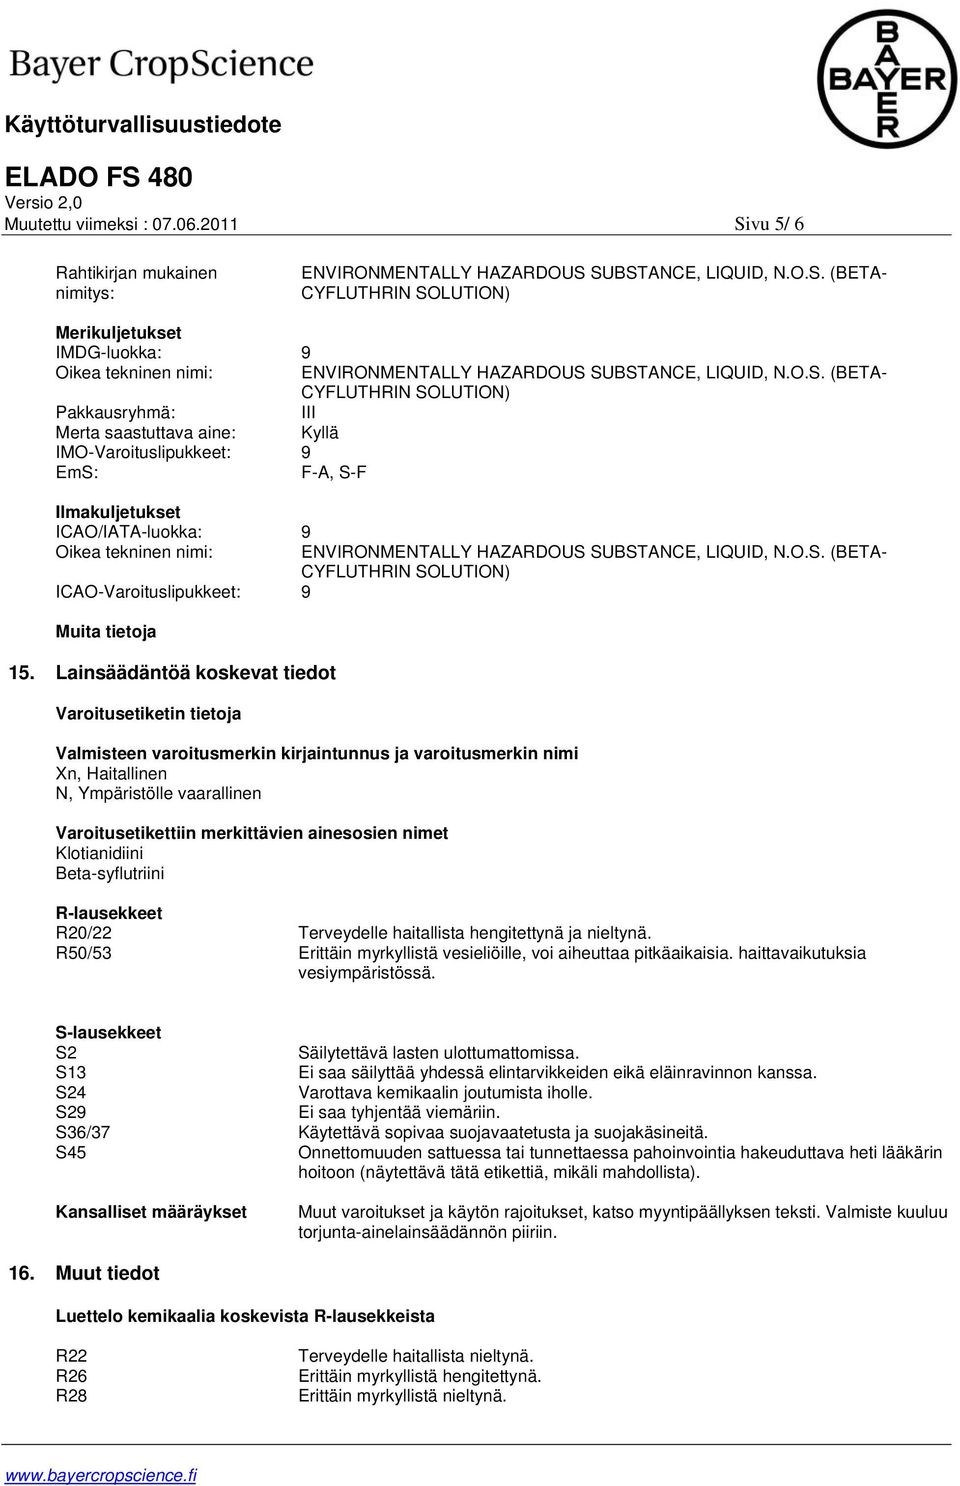 HAZARDOUS SUBSTANCE, LIQUID, N.O.S. (BETA- CYFLUTHRIN SOLUTION) ICAO-Varoituslipukkeet: 9 Muita tietoja 15.